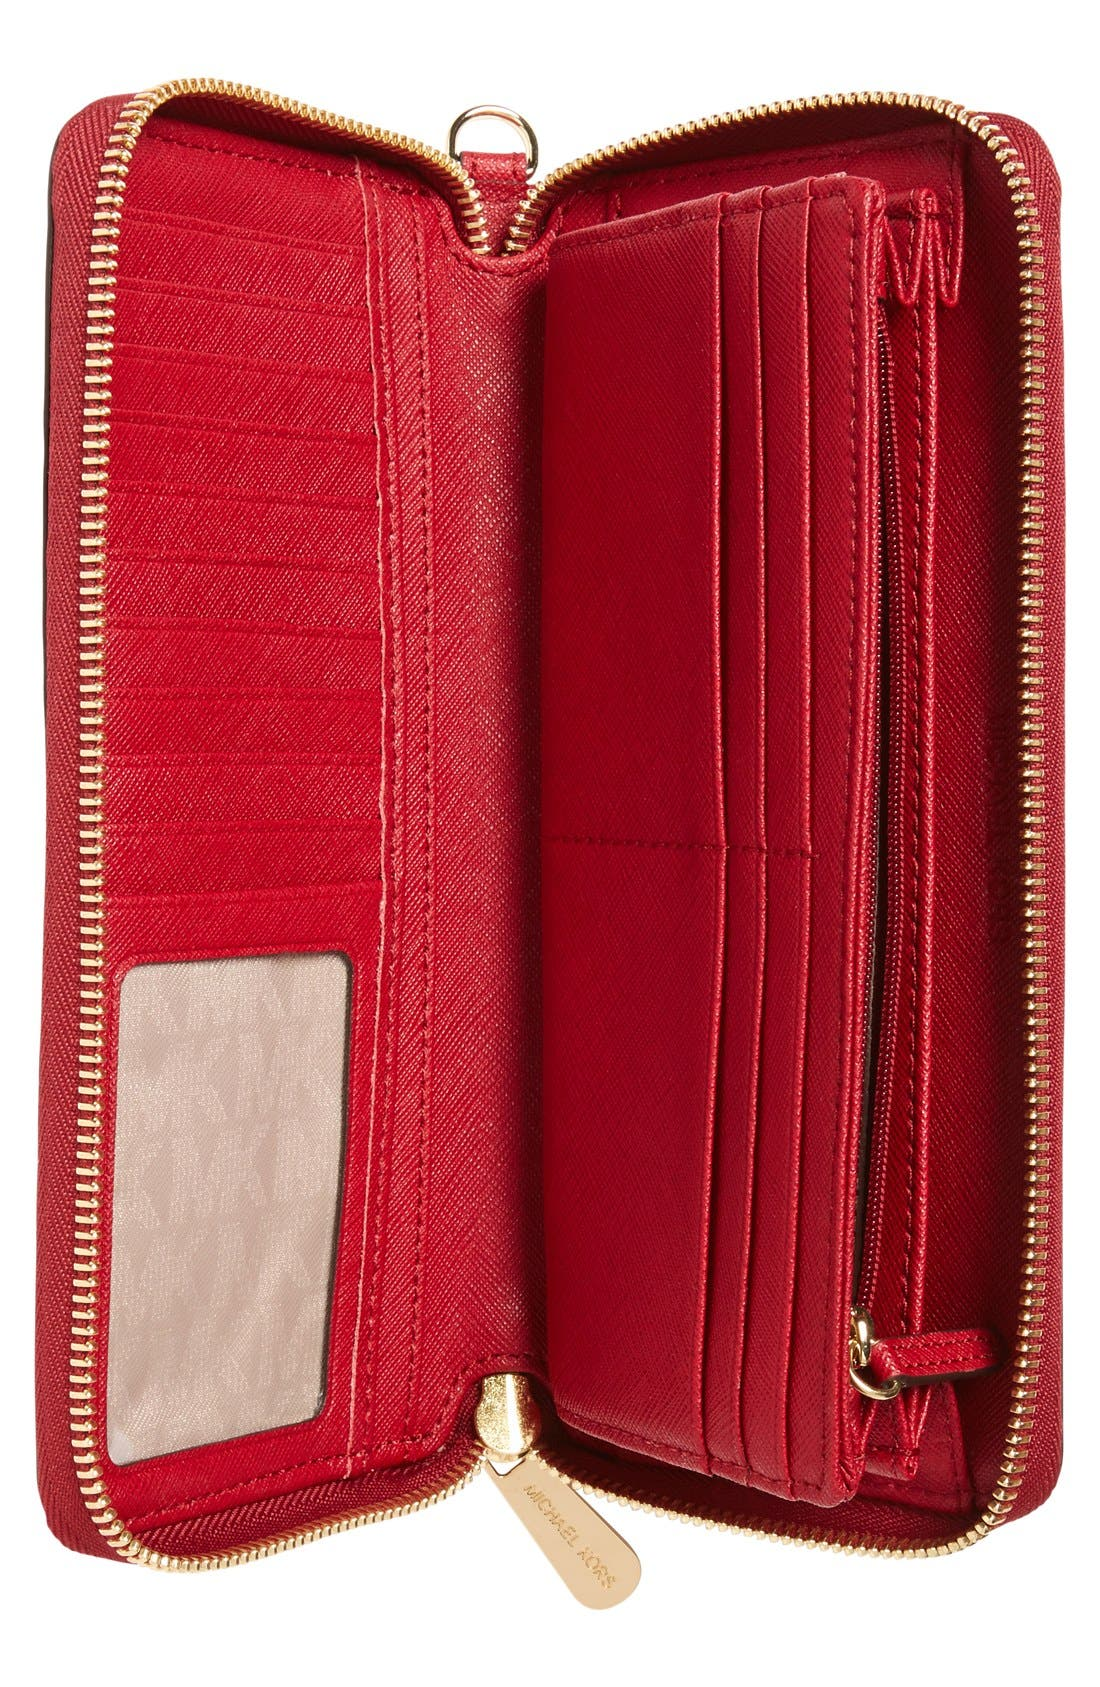 'Jet Set' Leather Travel Wallet,                             Alternate thumbnail 19, color,